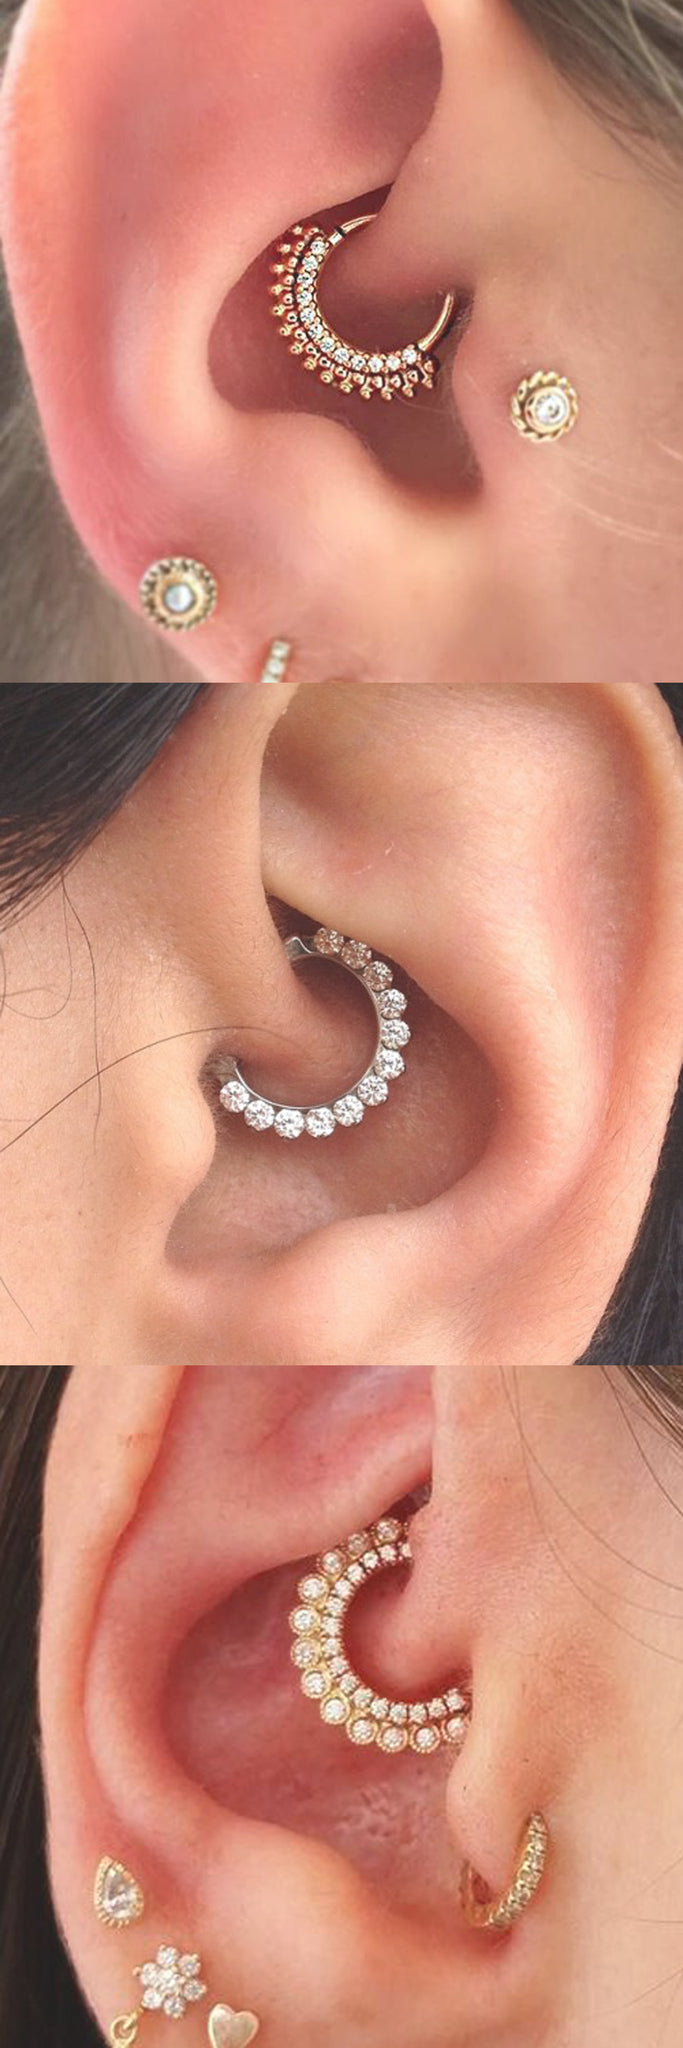 2017 Trendy Ear Piercing Ideas at MyBodiArt.com - Daith Piercing Jewelry Earring Gold Silver 16G - Tragus Stud